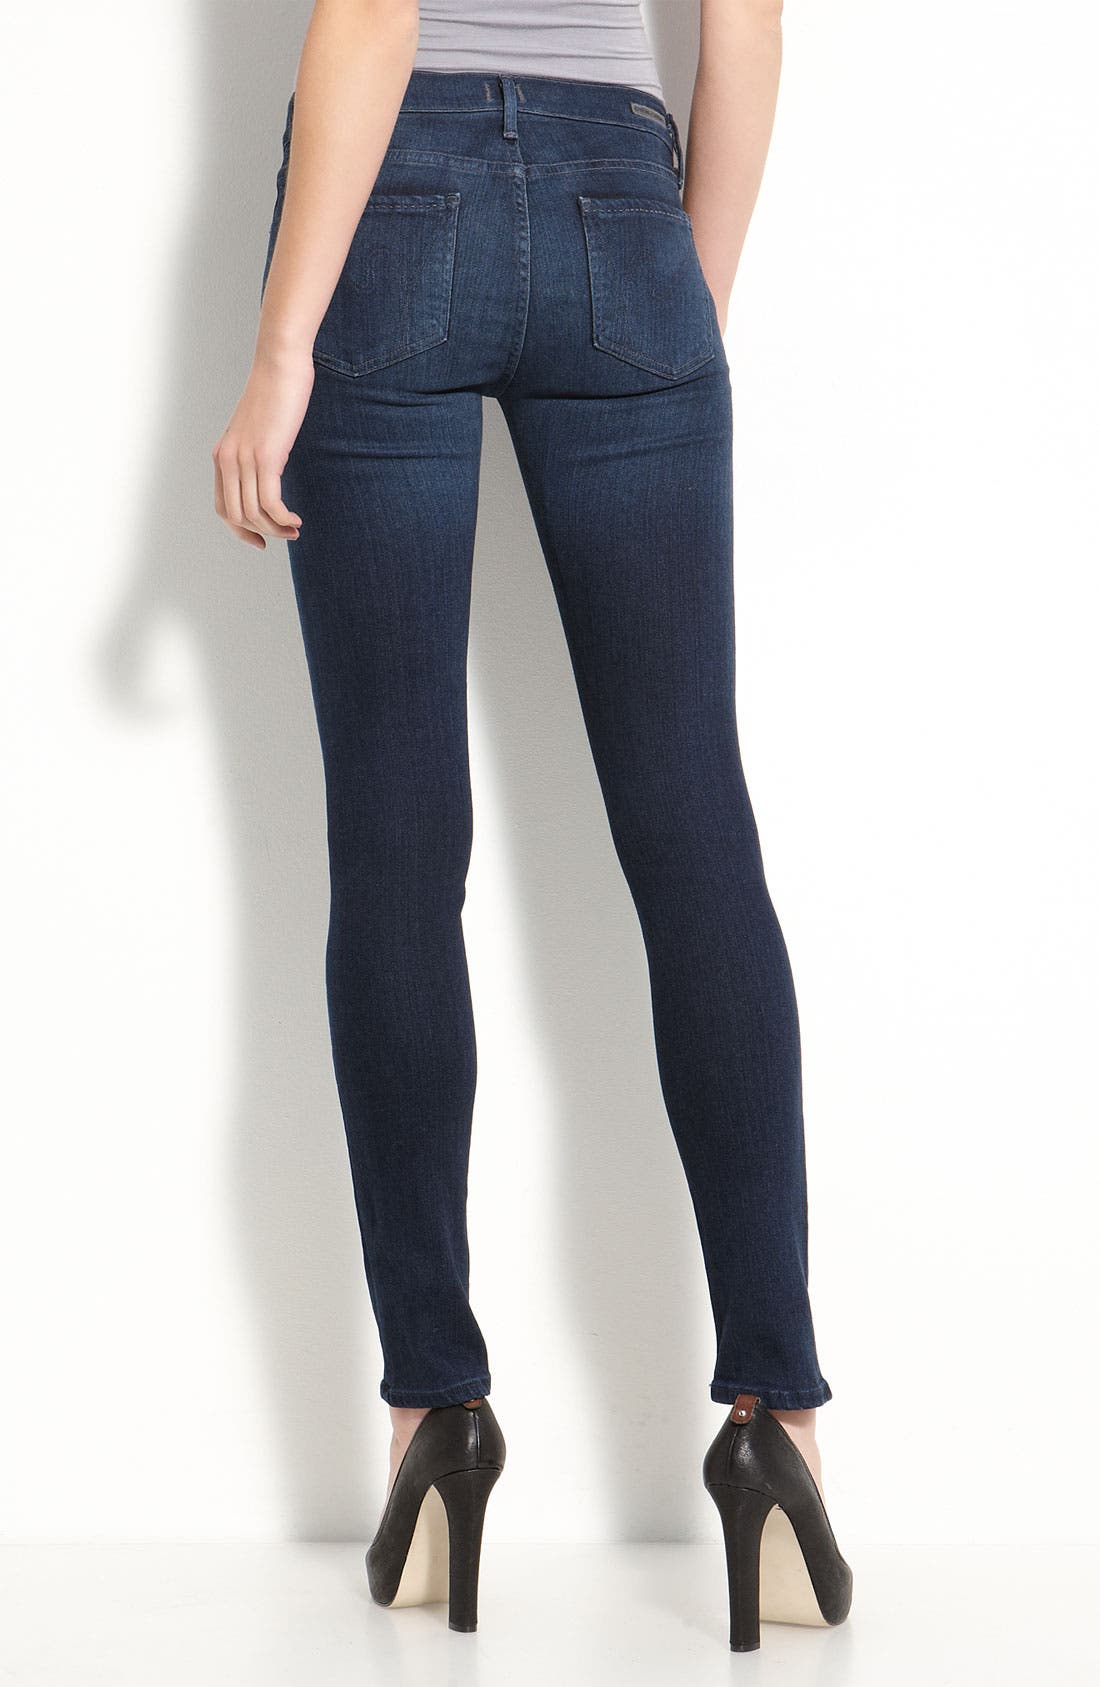 Main Image - Citizens of Humanity 'Second Skin' Stretch Denim Jeans (Satellite Wash)